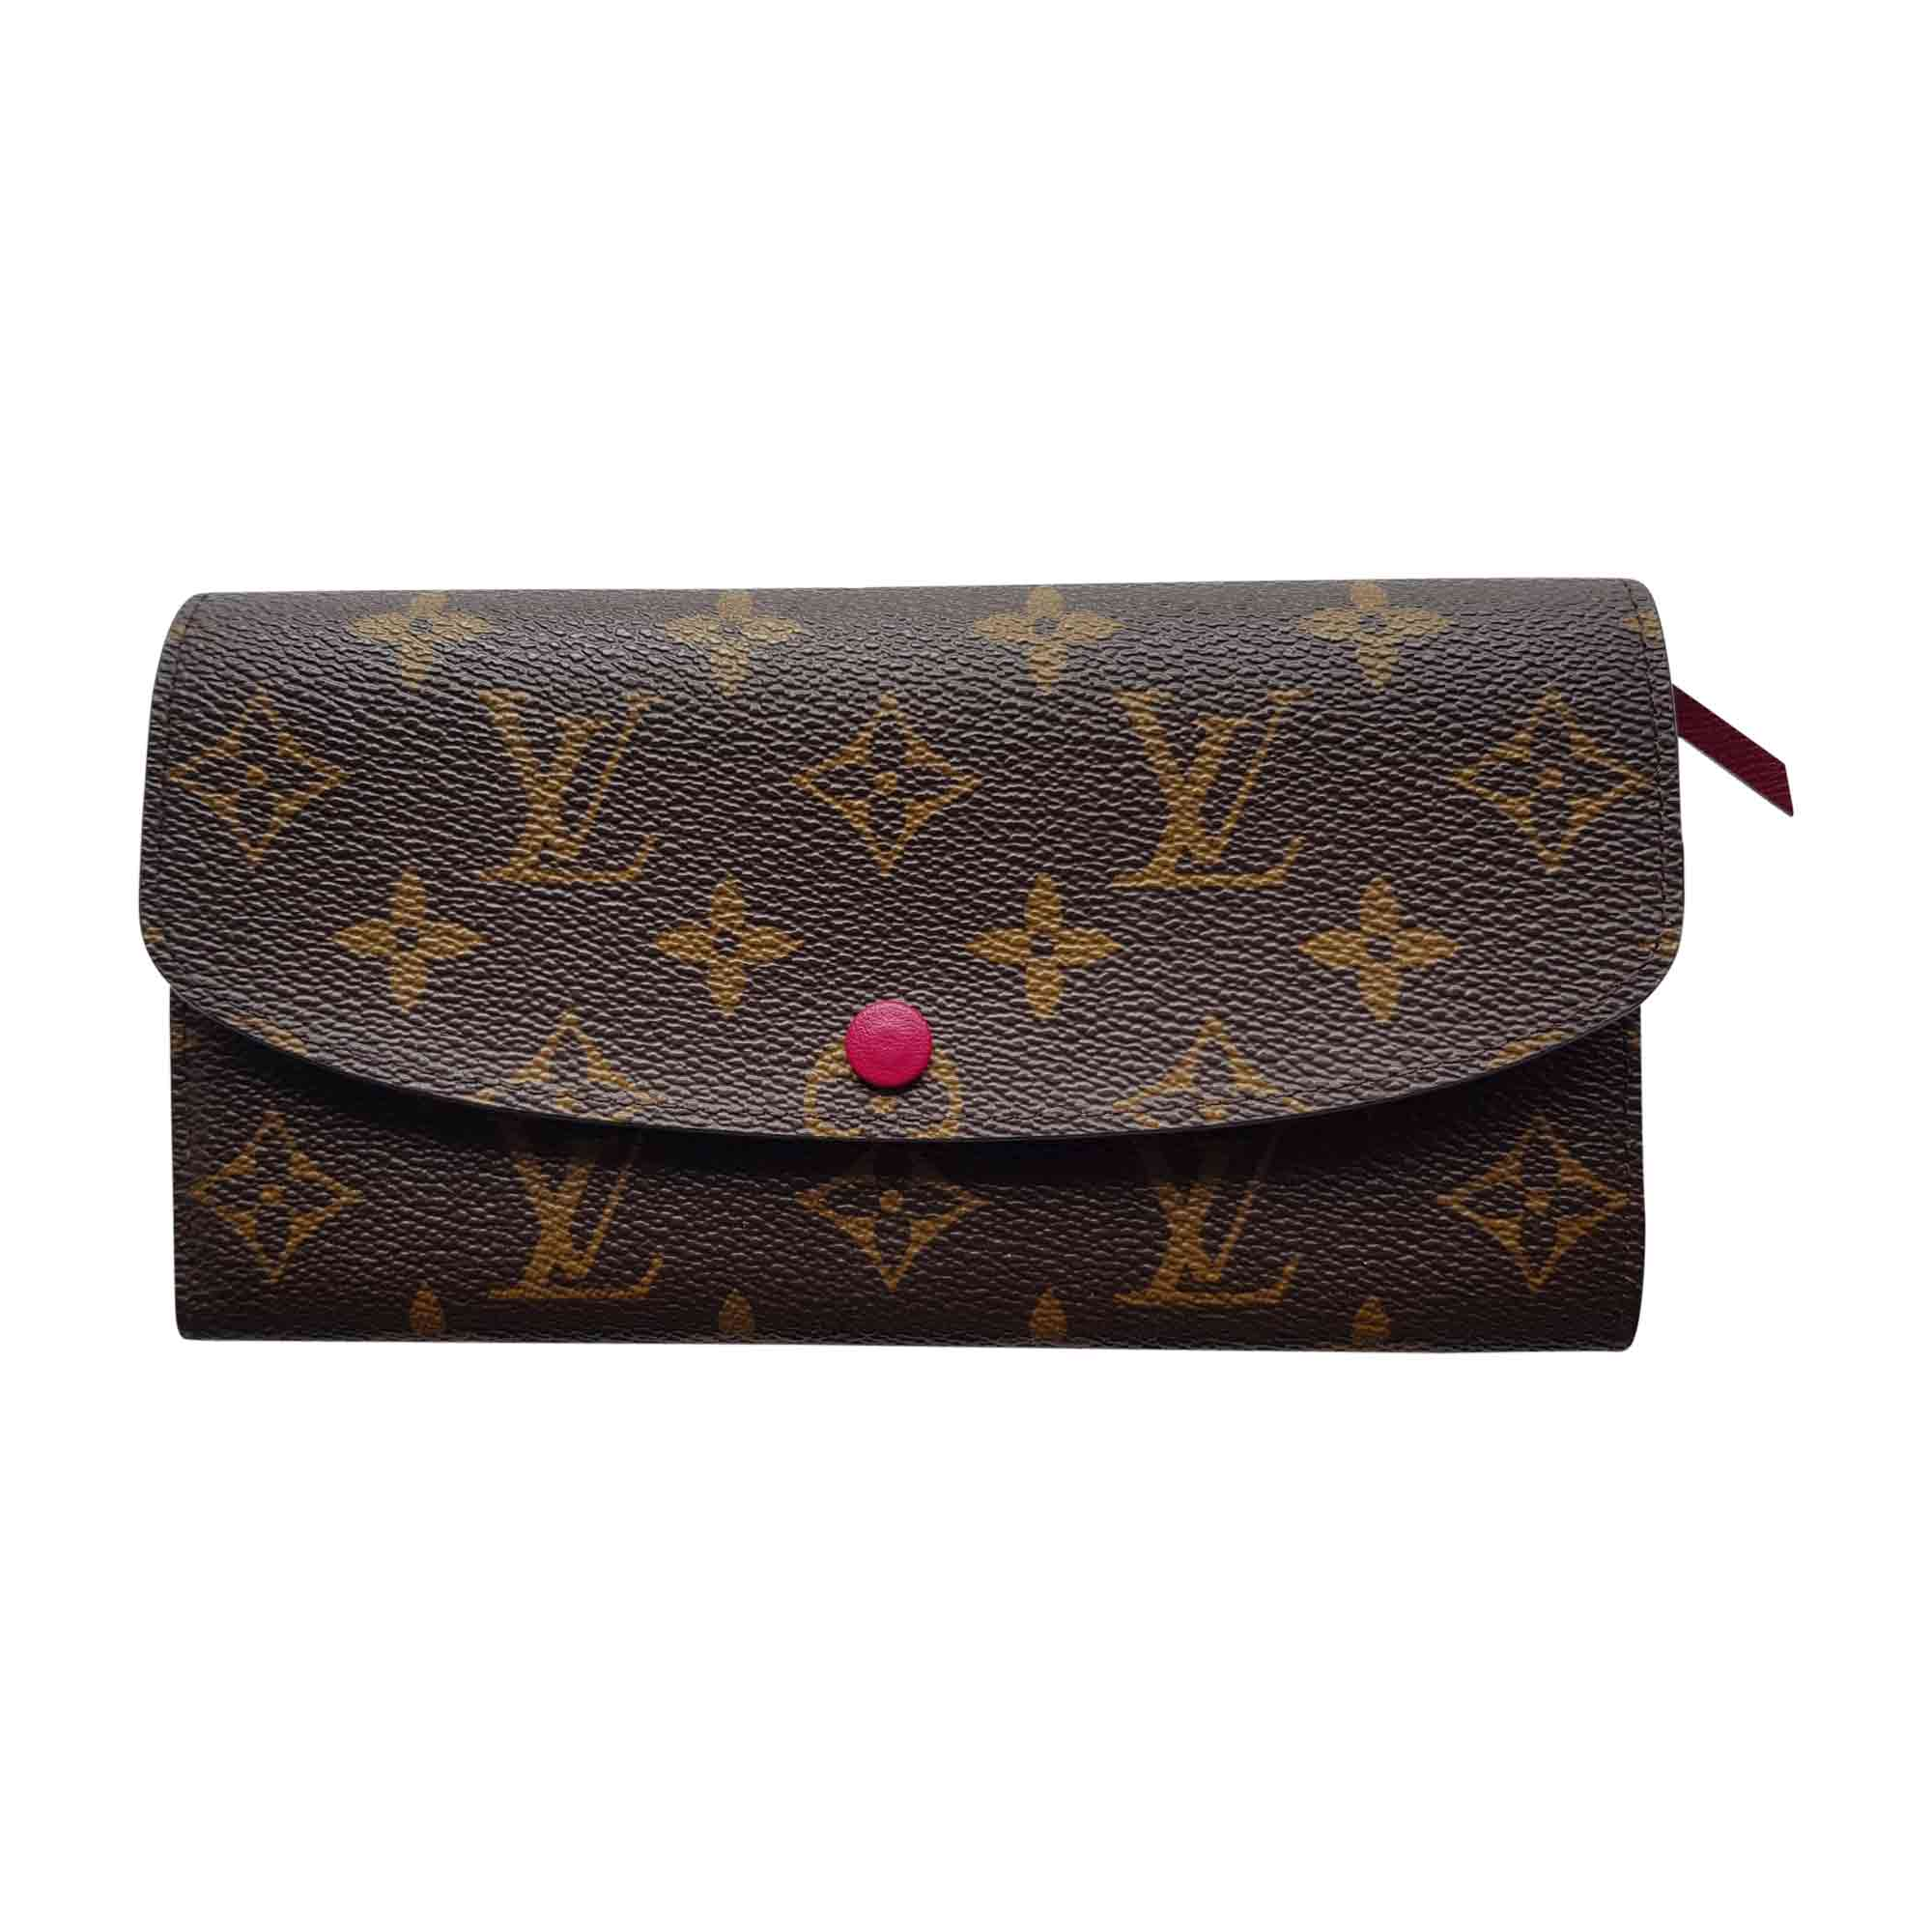 Portefeuille LOUIS VUITTON emilie monogram vendu par Destockdress ... c82b86ad6eb